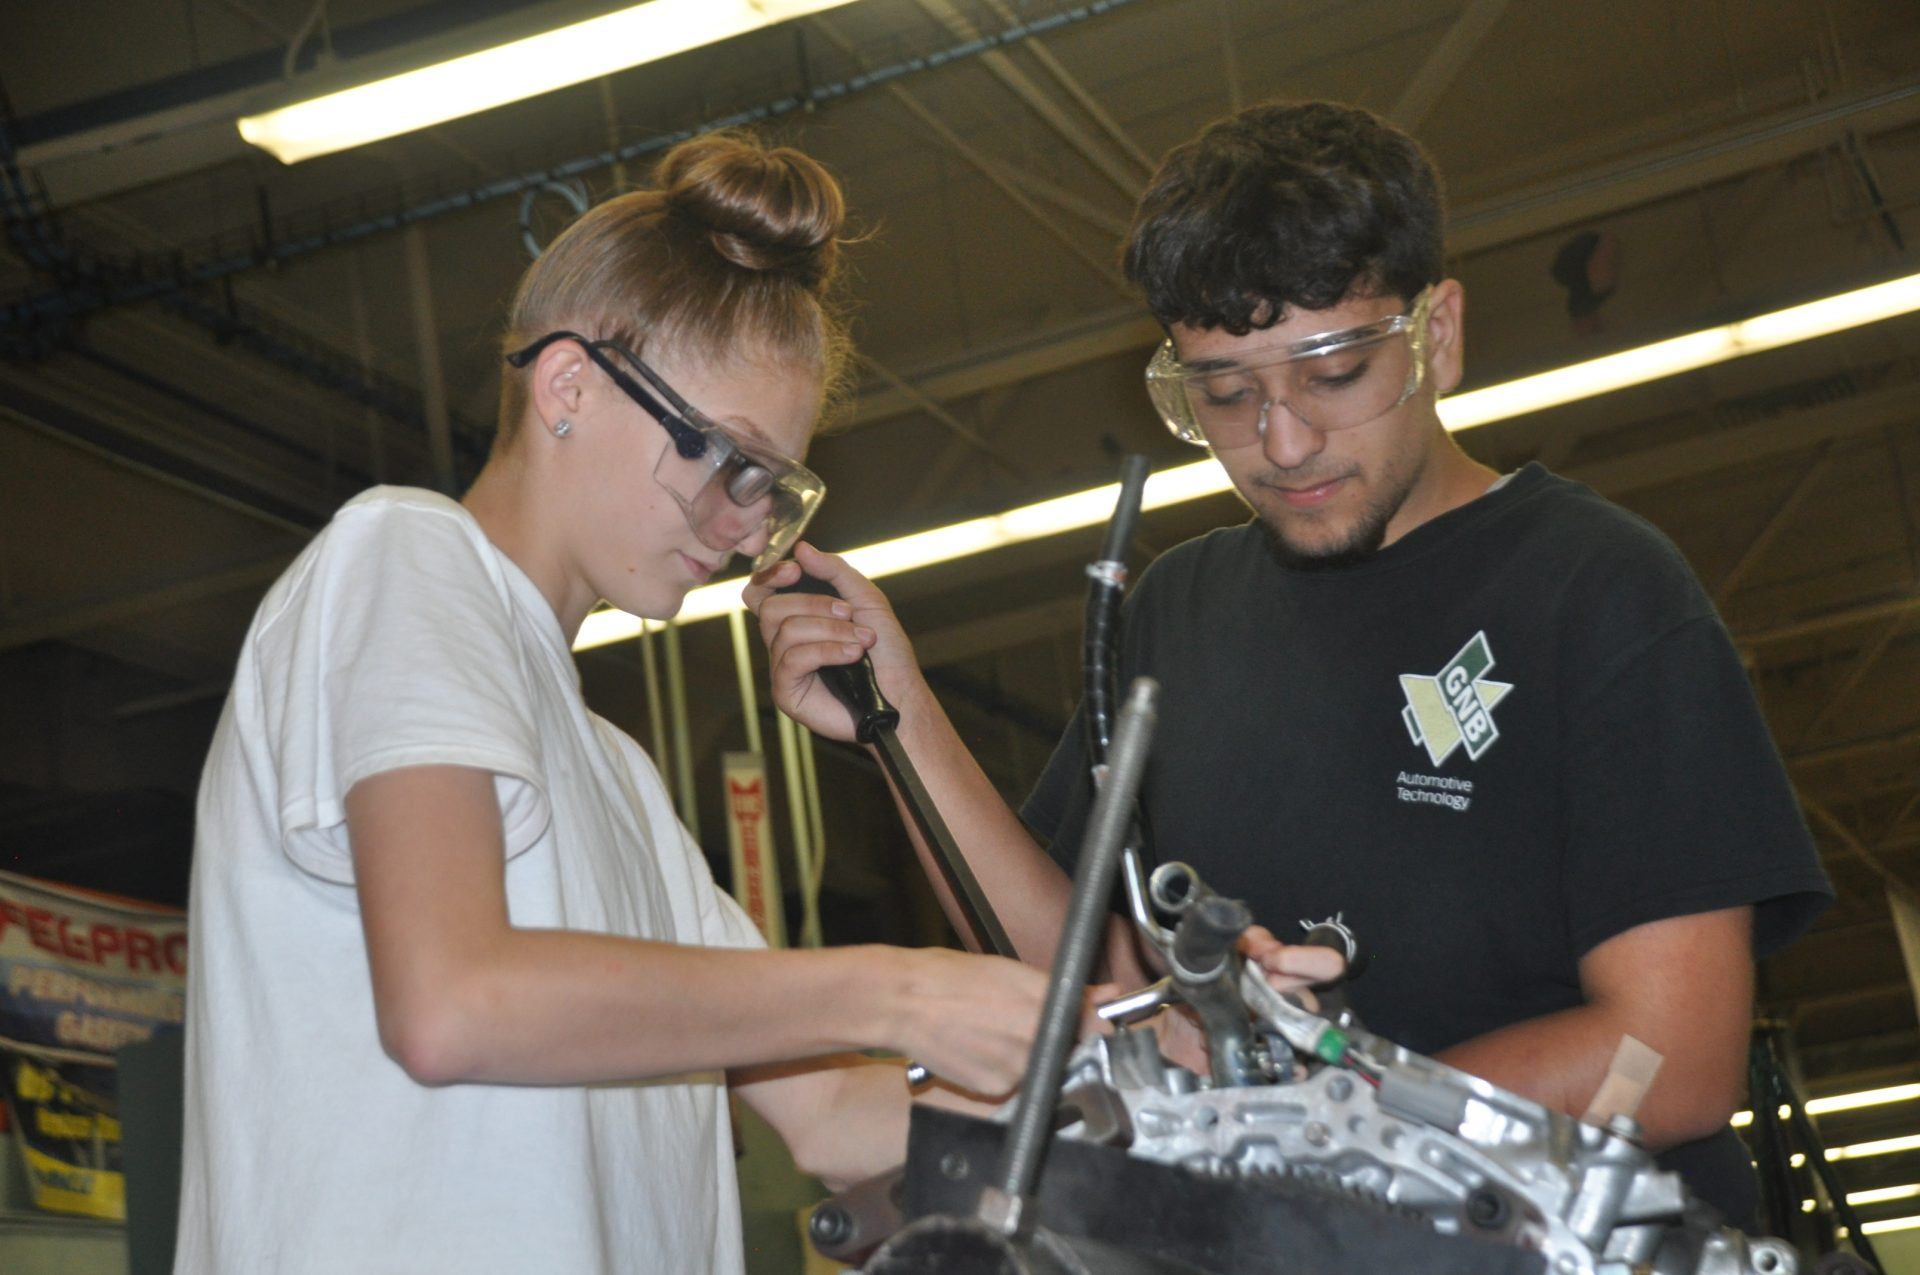 Automotive students working together on a engine